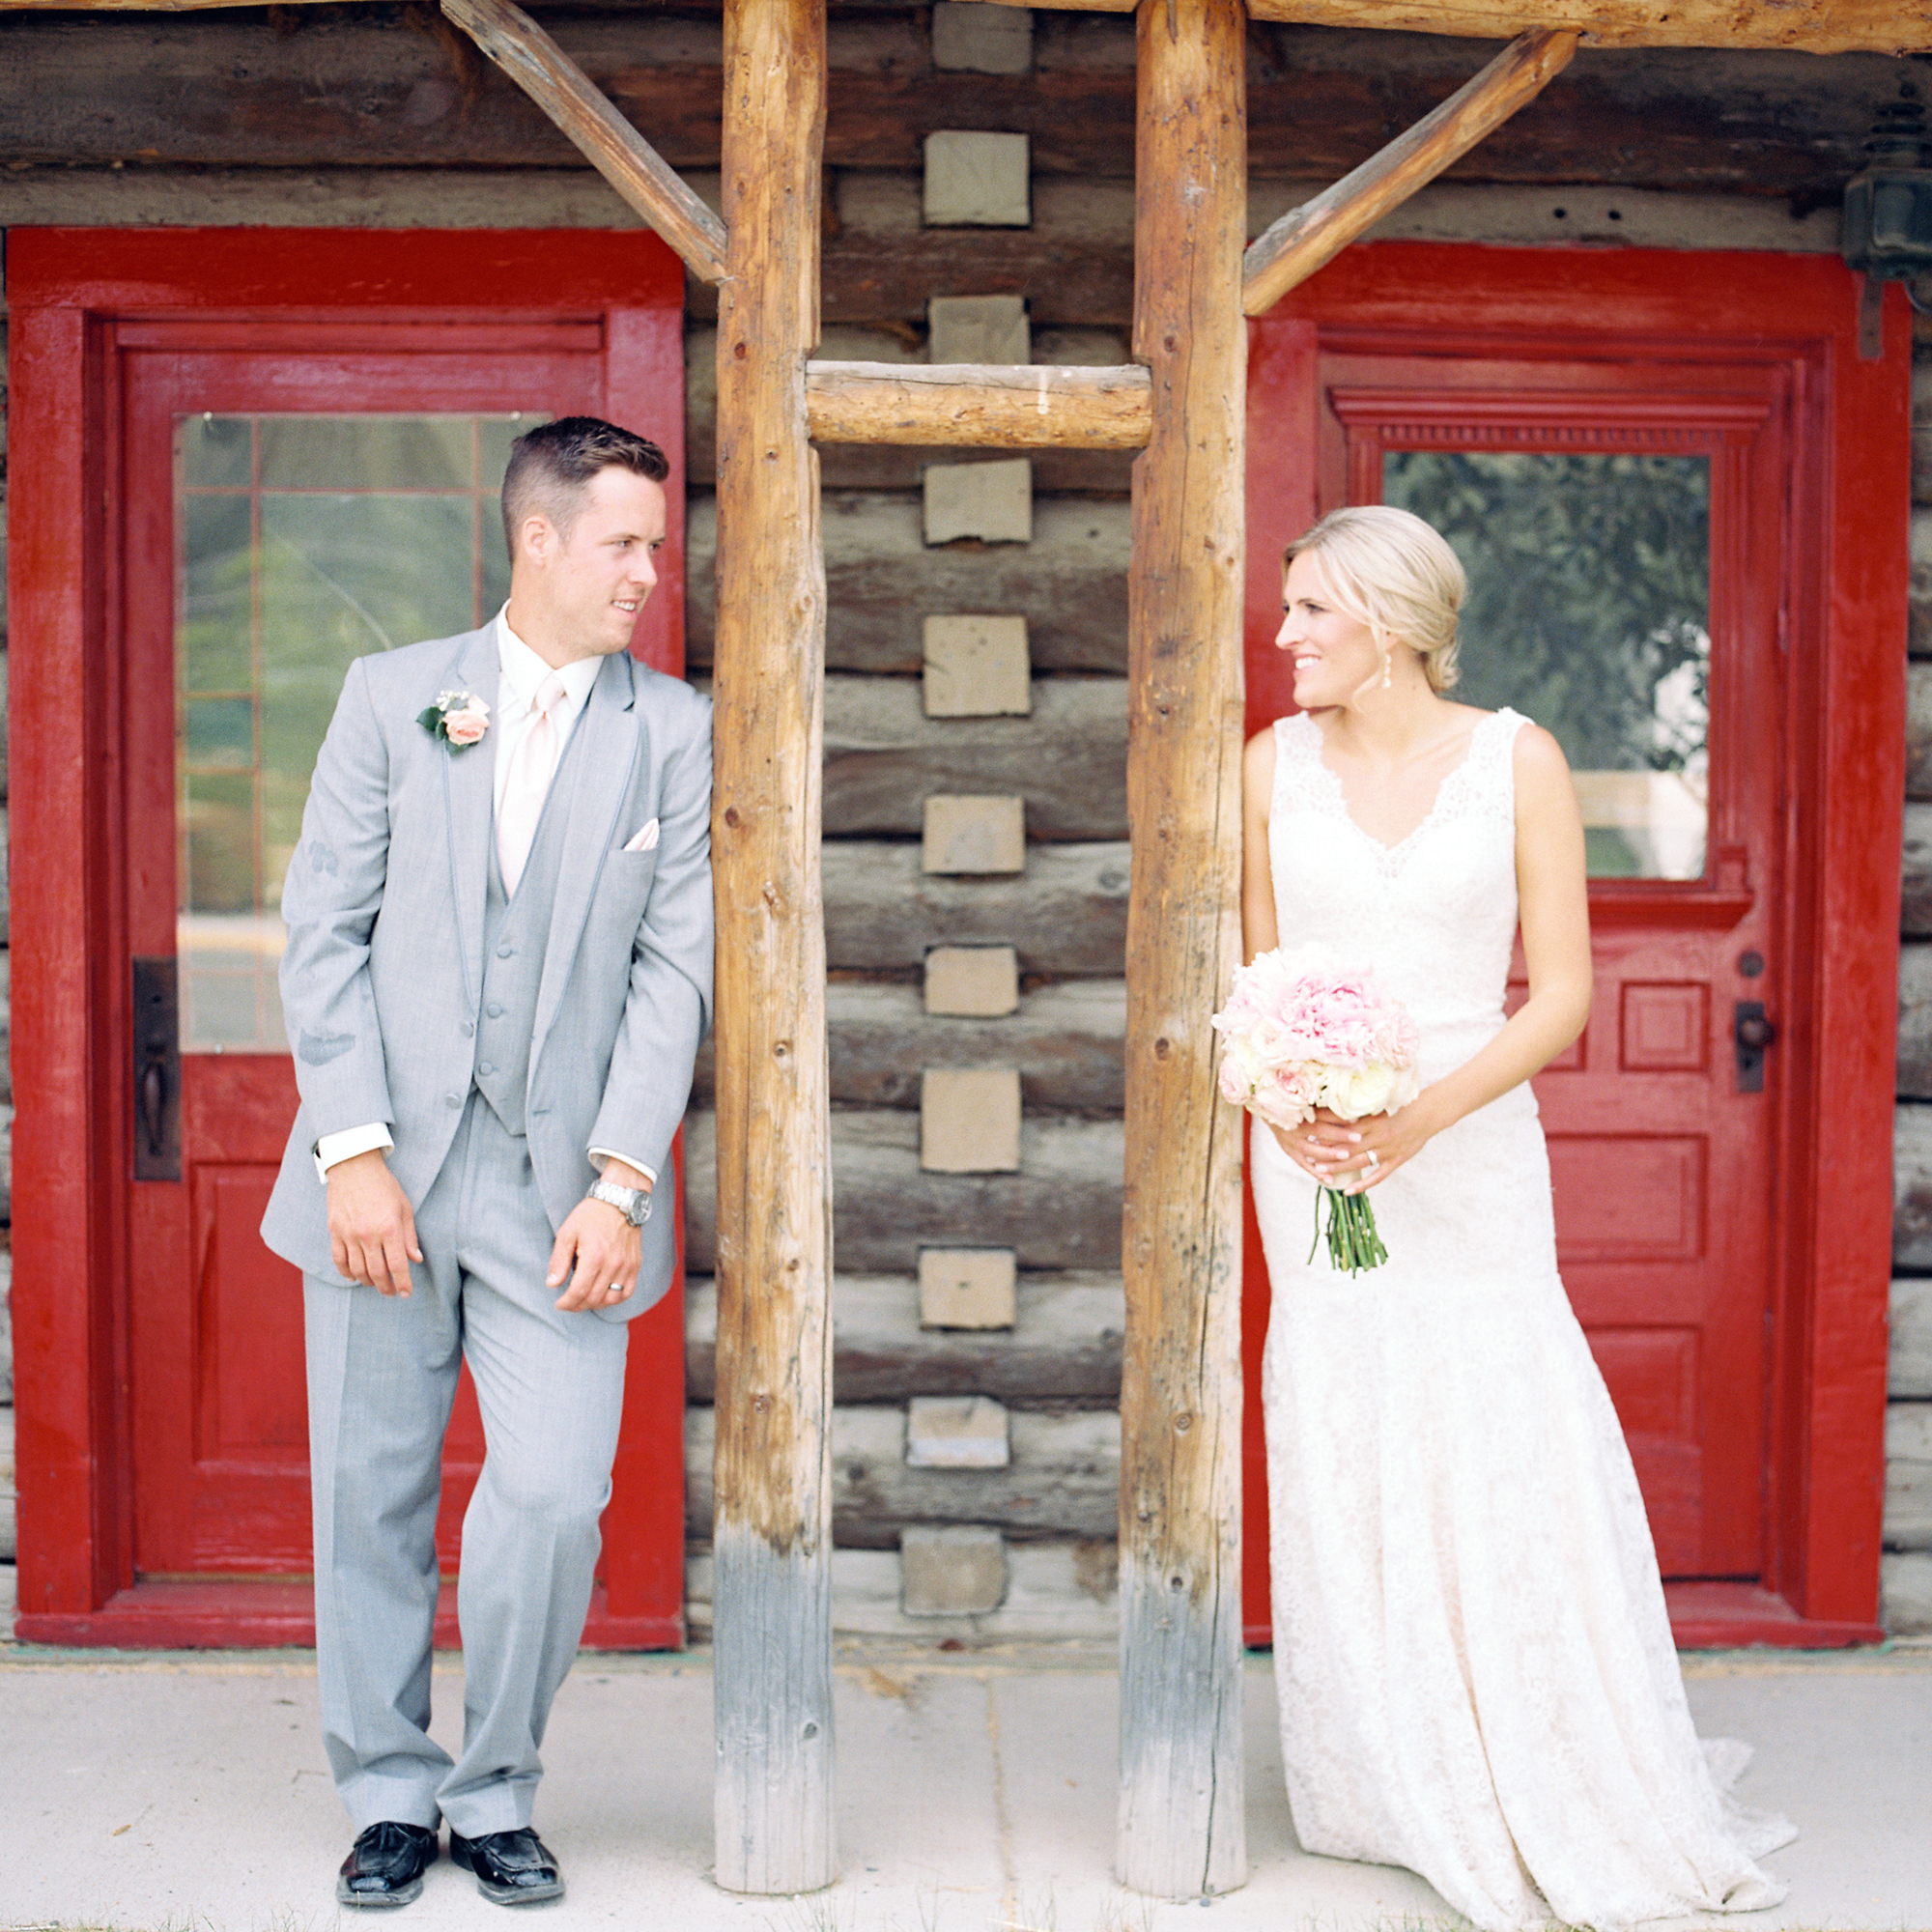 Bride and groom in front of old building in Whitehorse, Yukon